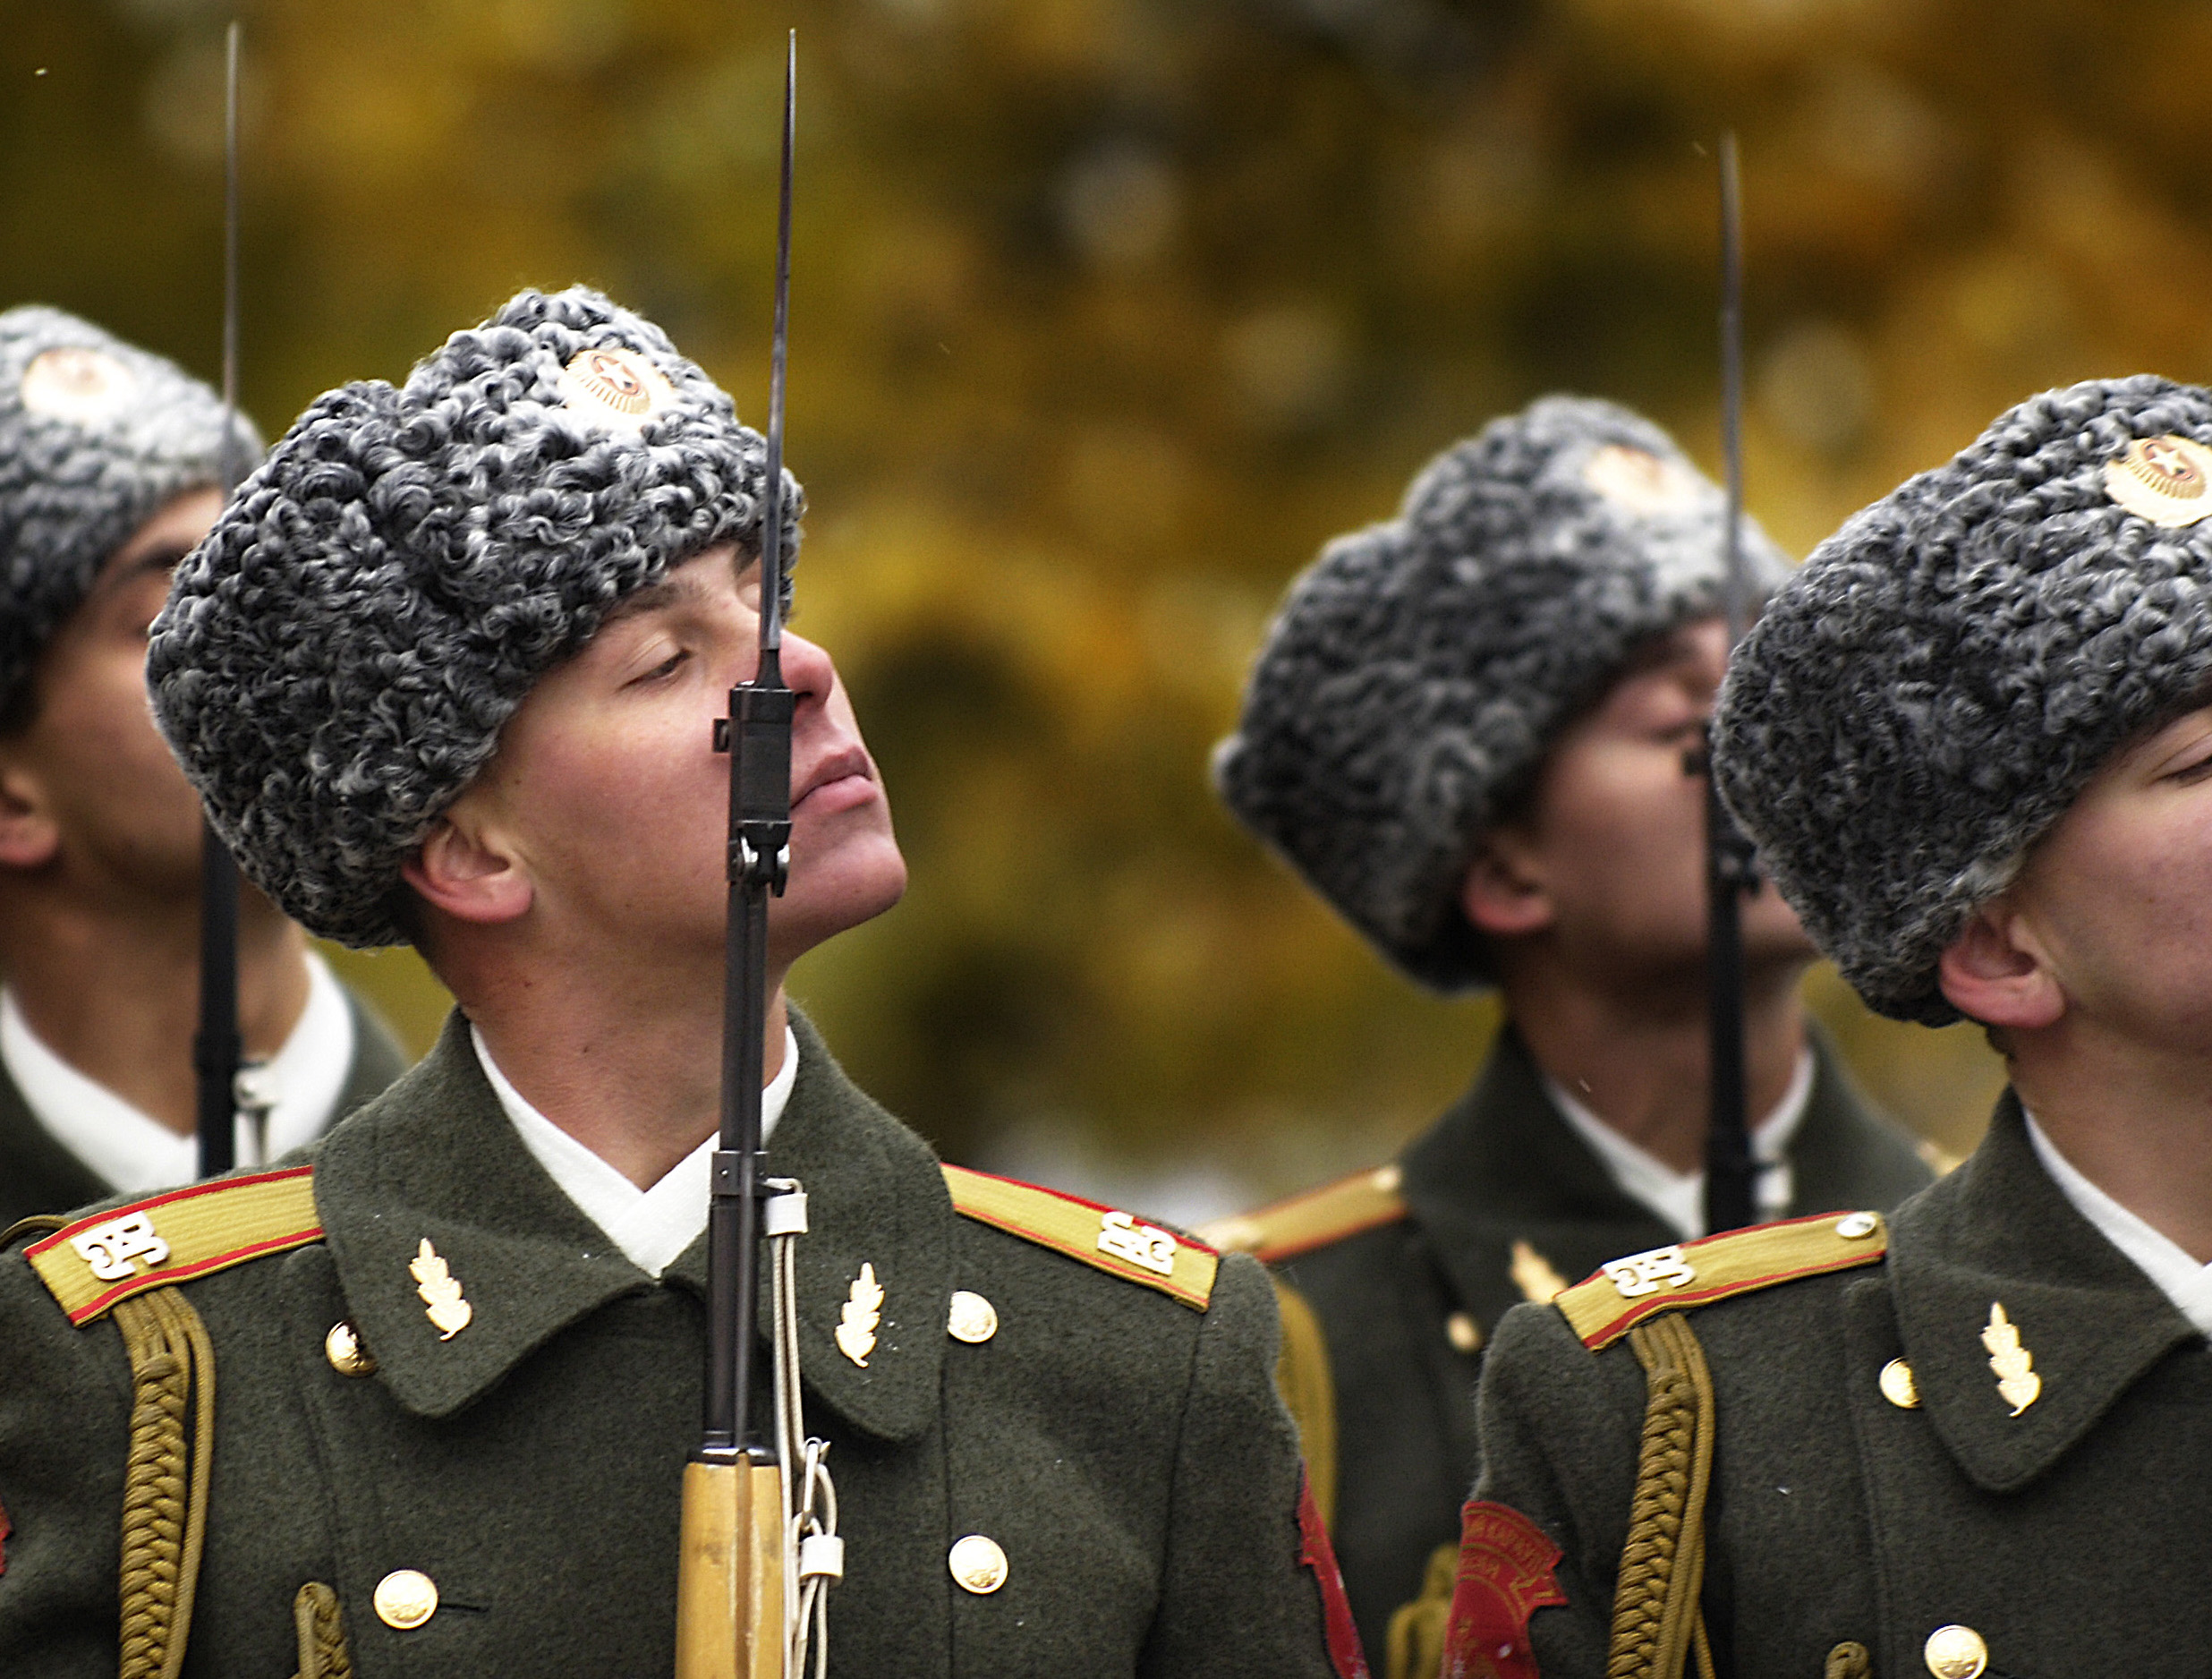 The Russian Honor Guard stand-by as part of a ceremony in 2006. U.S. DoD Photo